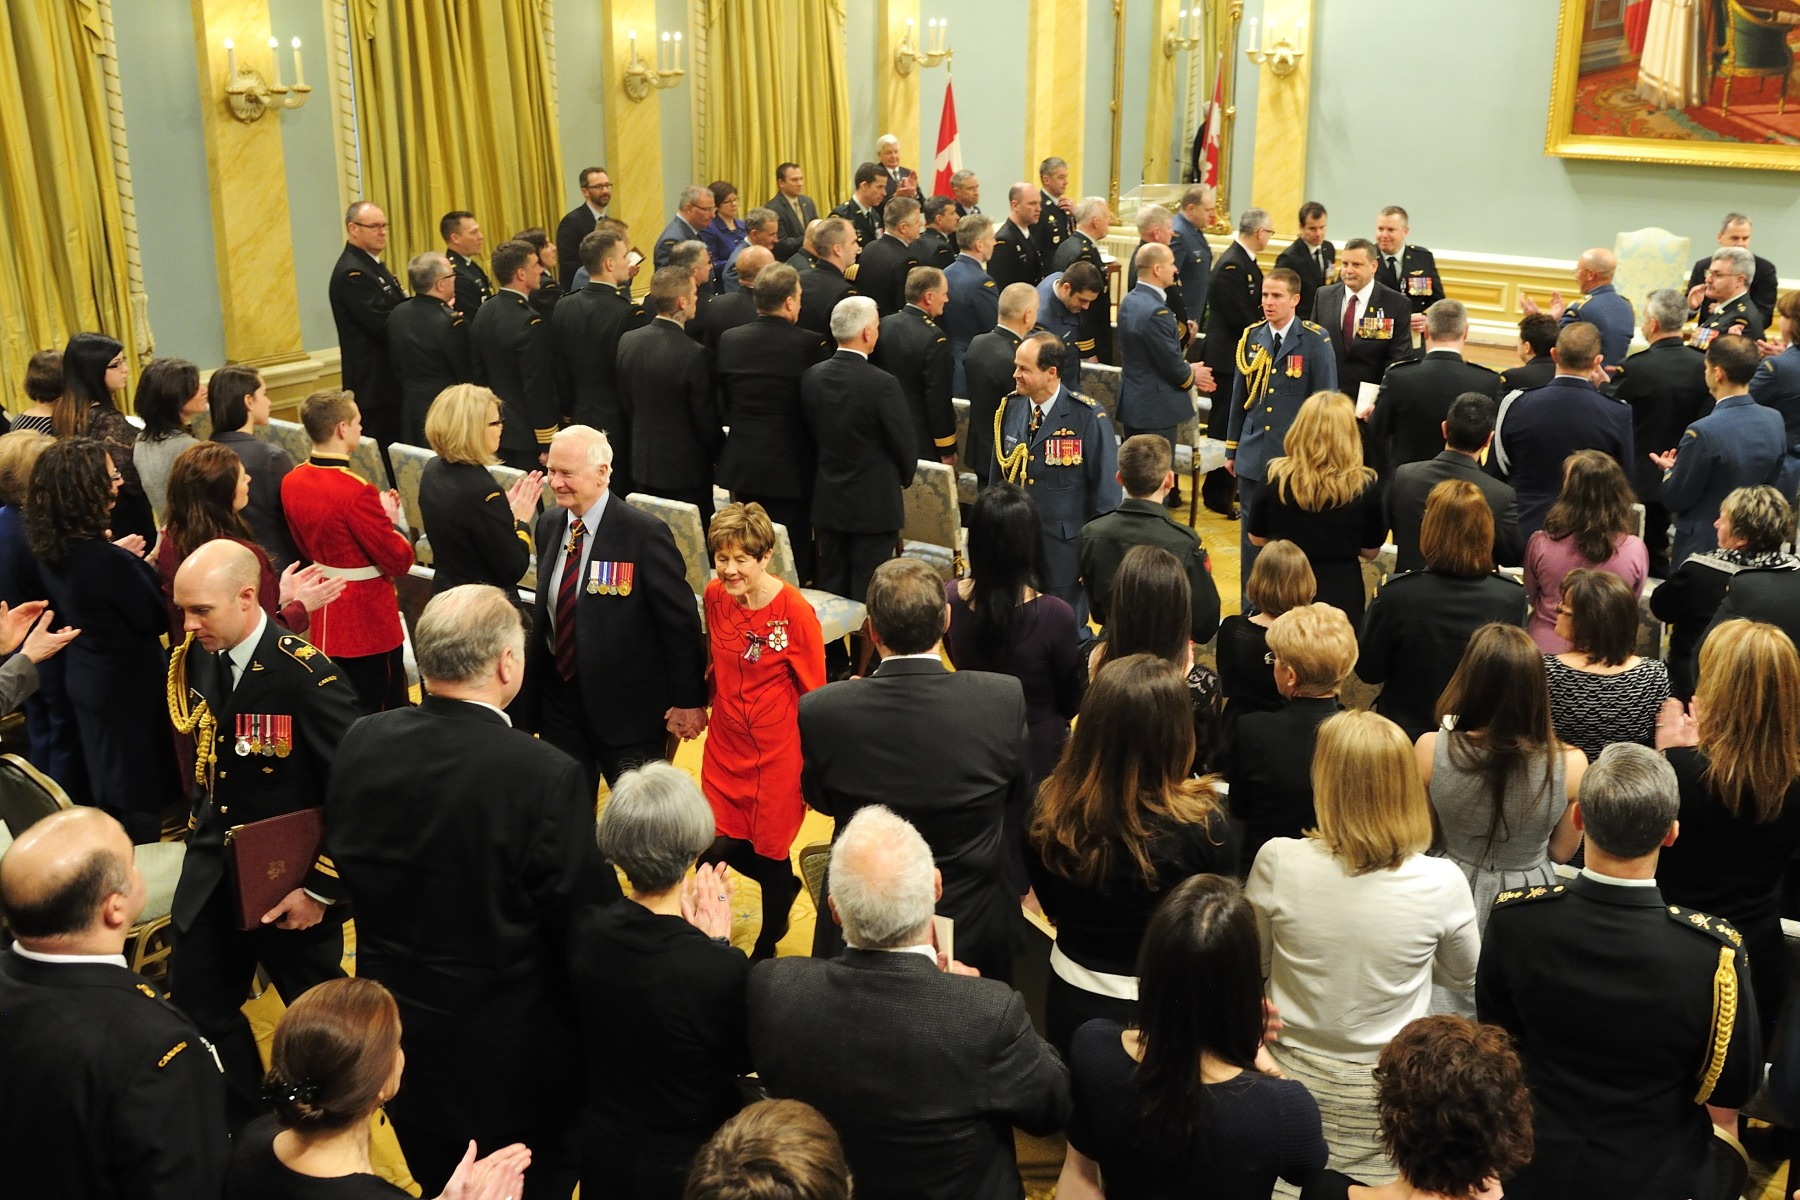 These decorations are an important part of the Canadian Honours System, which recognizes excellence. Meritorious Service Decorations honour either a single achievement or an activity over a specified period. The Meritorious Service Decorations are open to both Canadians and non-Canadians.